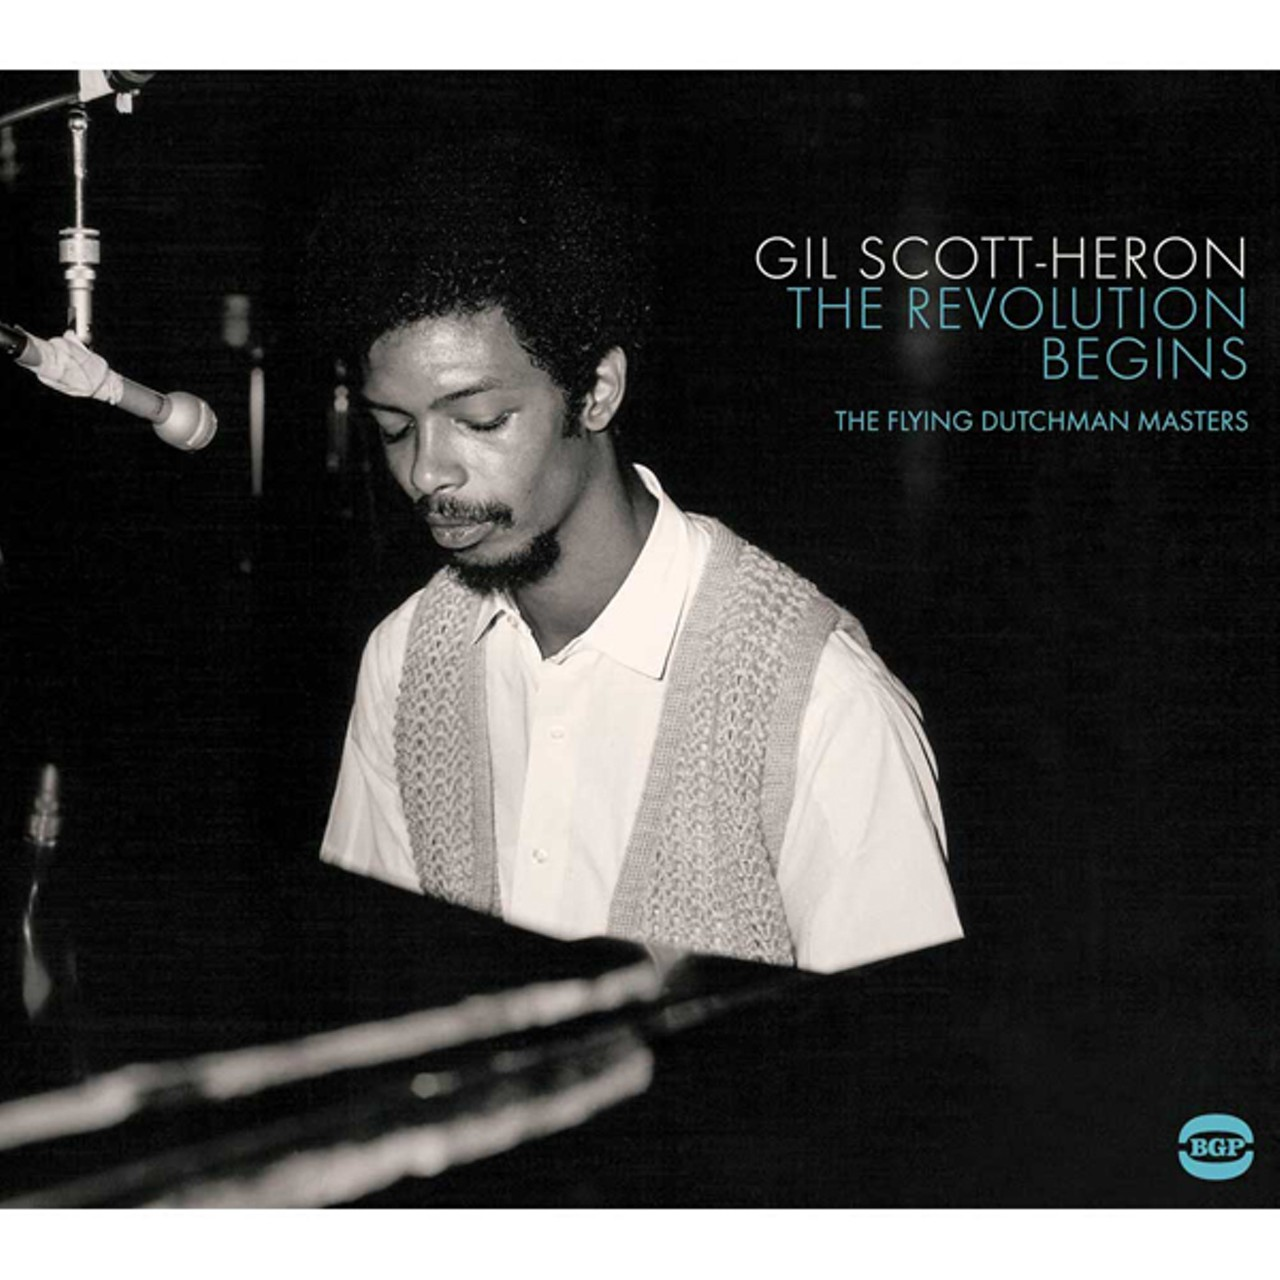 Gil Scott Heron the revolution begins